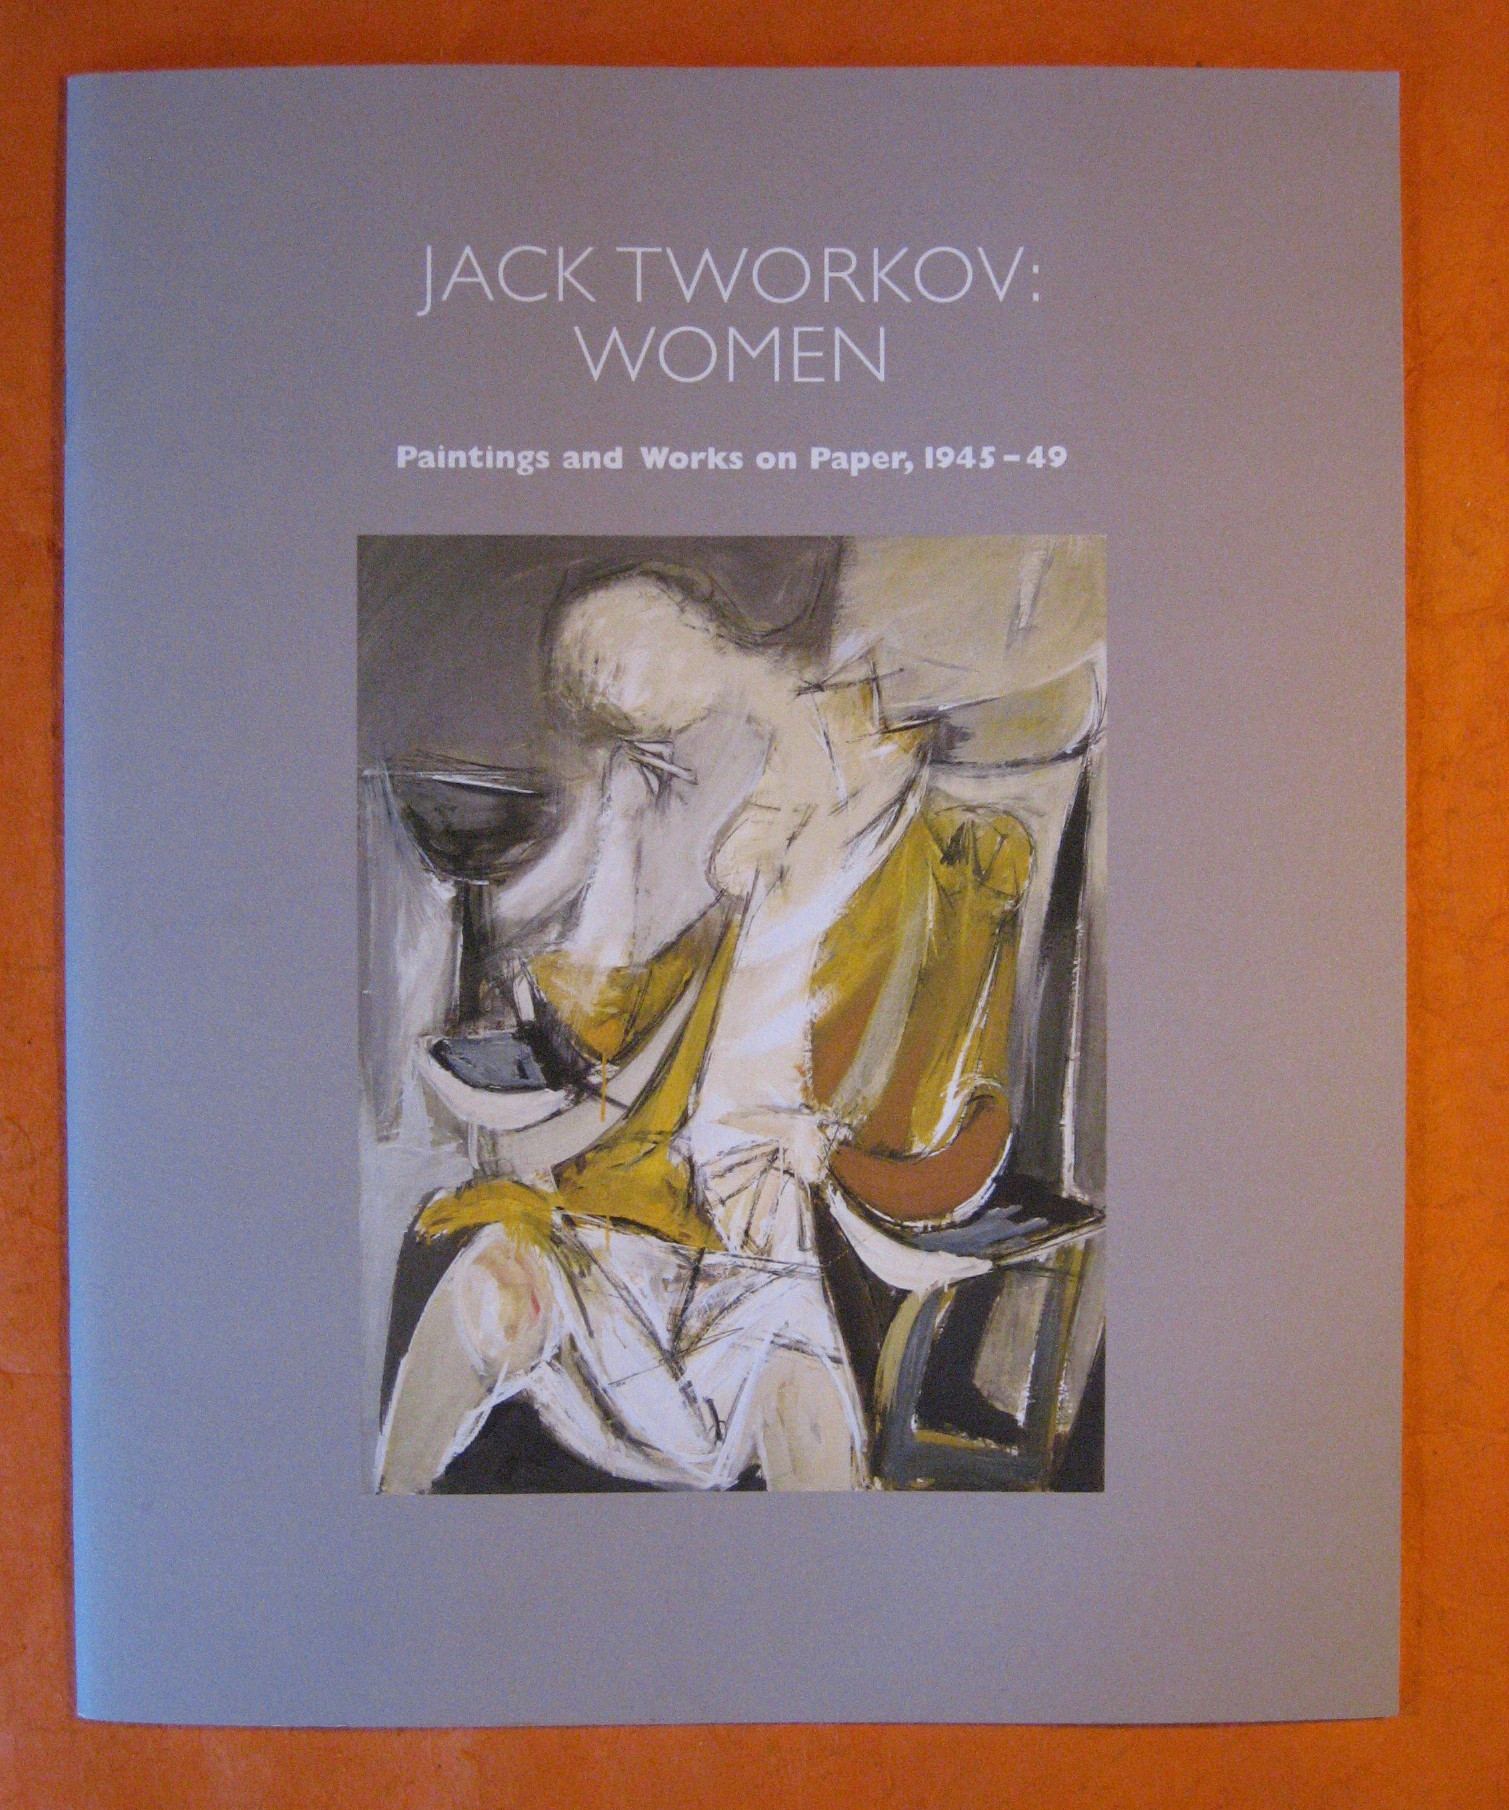 Jack Tworkov:  Women:  Paintings and Works on Paper, 1945-49, Tworkov, Jack; Pollock, Lindsay (essay)